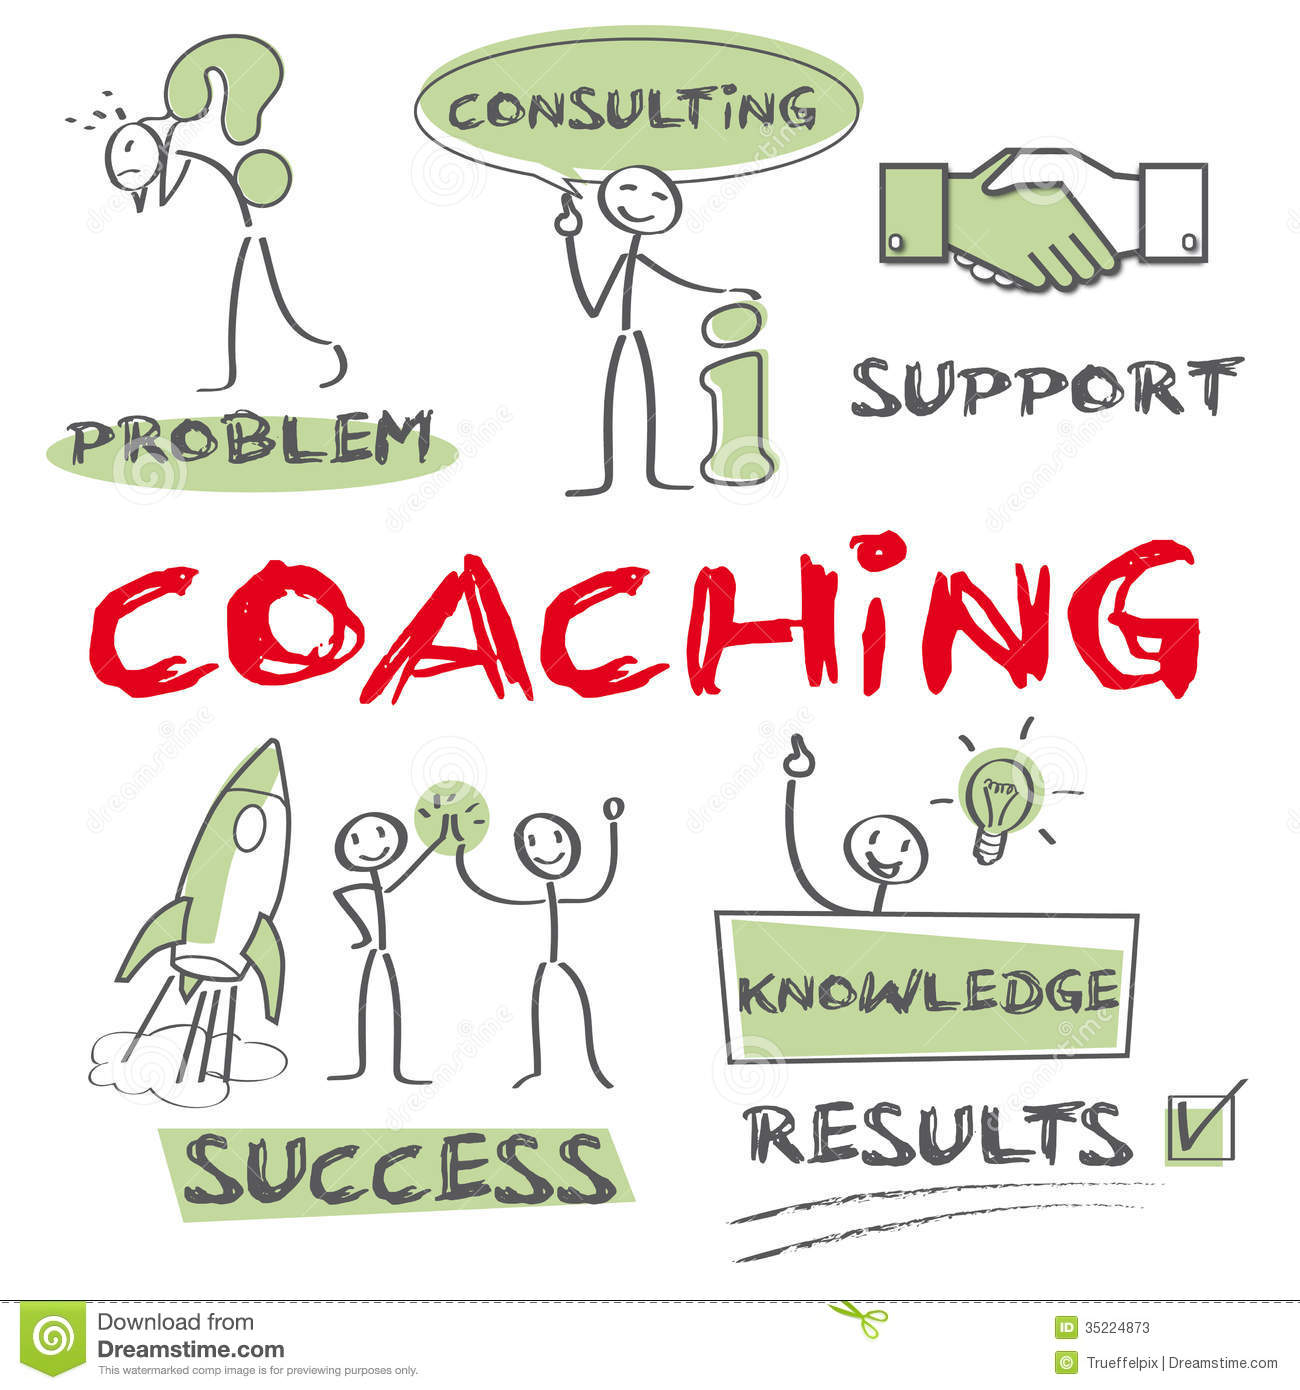 an analysis of the life of being a coach If a life coaching client has an ongoing goal then they may choose lots of reasons why they should do what they are doing life coaching is the process of a coach and client partnering and dev.